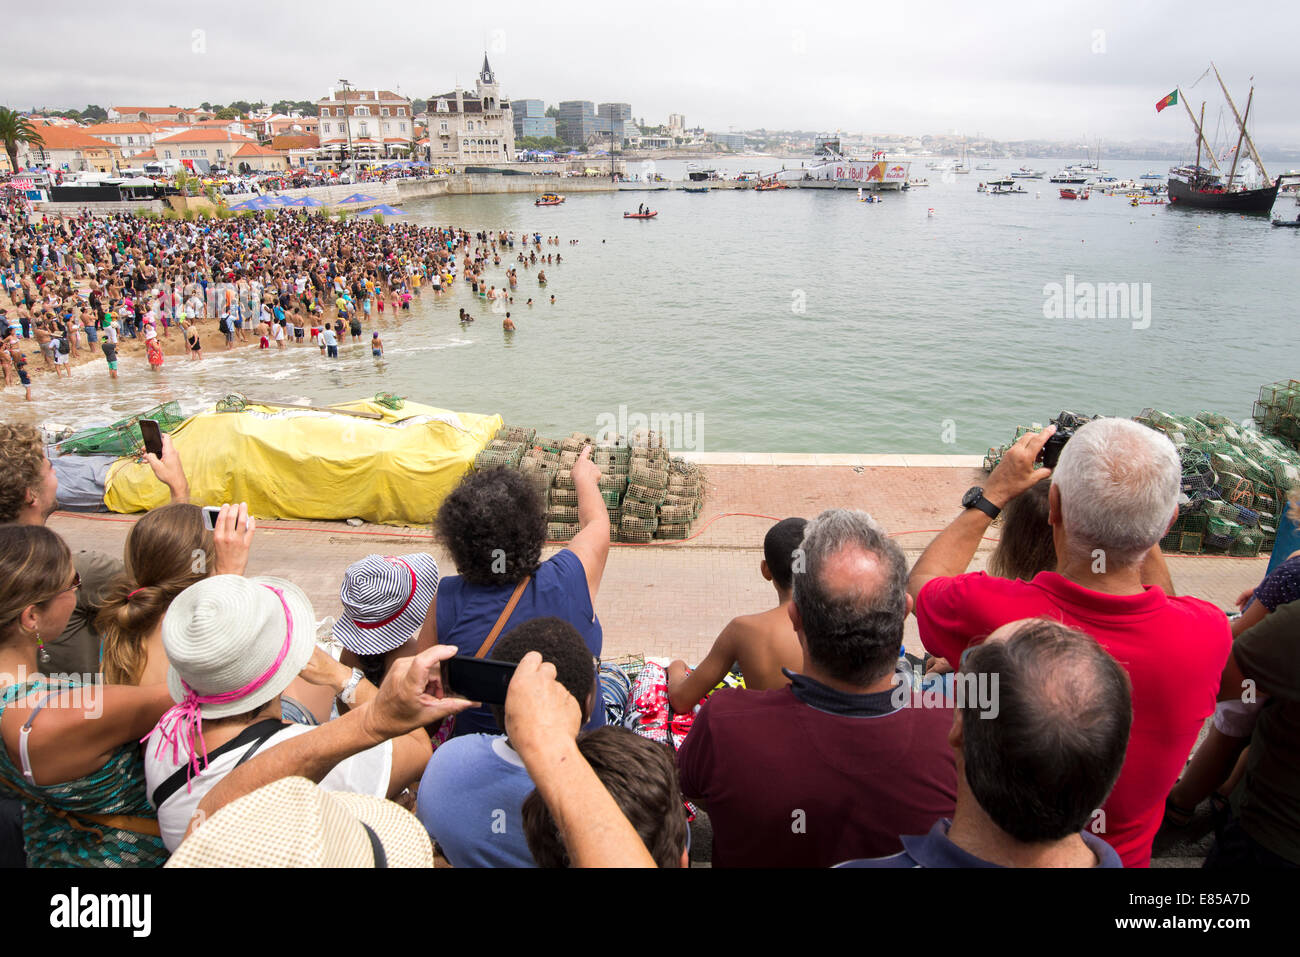 Crowd of people watching the 2014 red bull flugtag in Cascais, Portugal - Stock Image